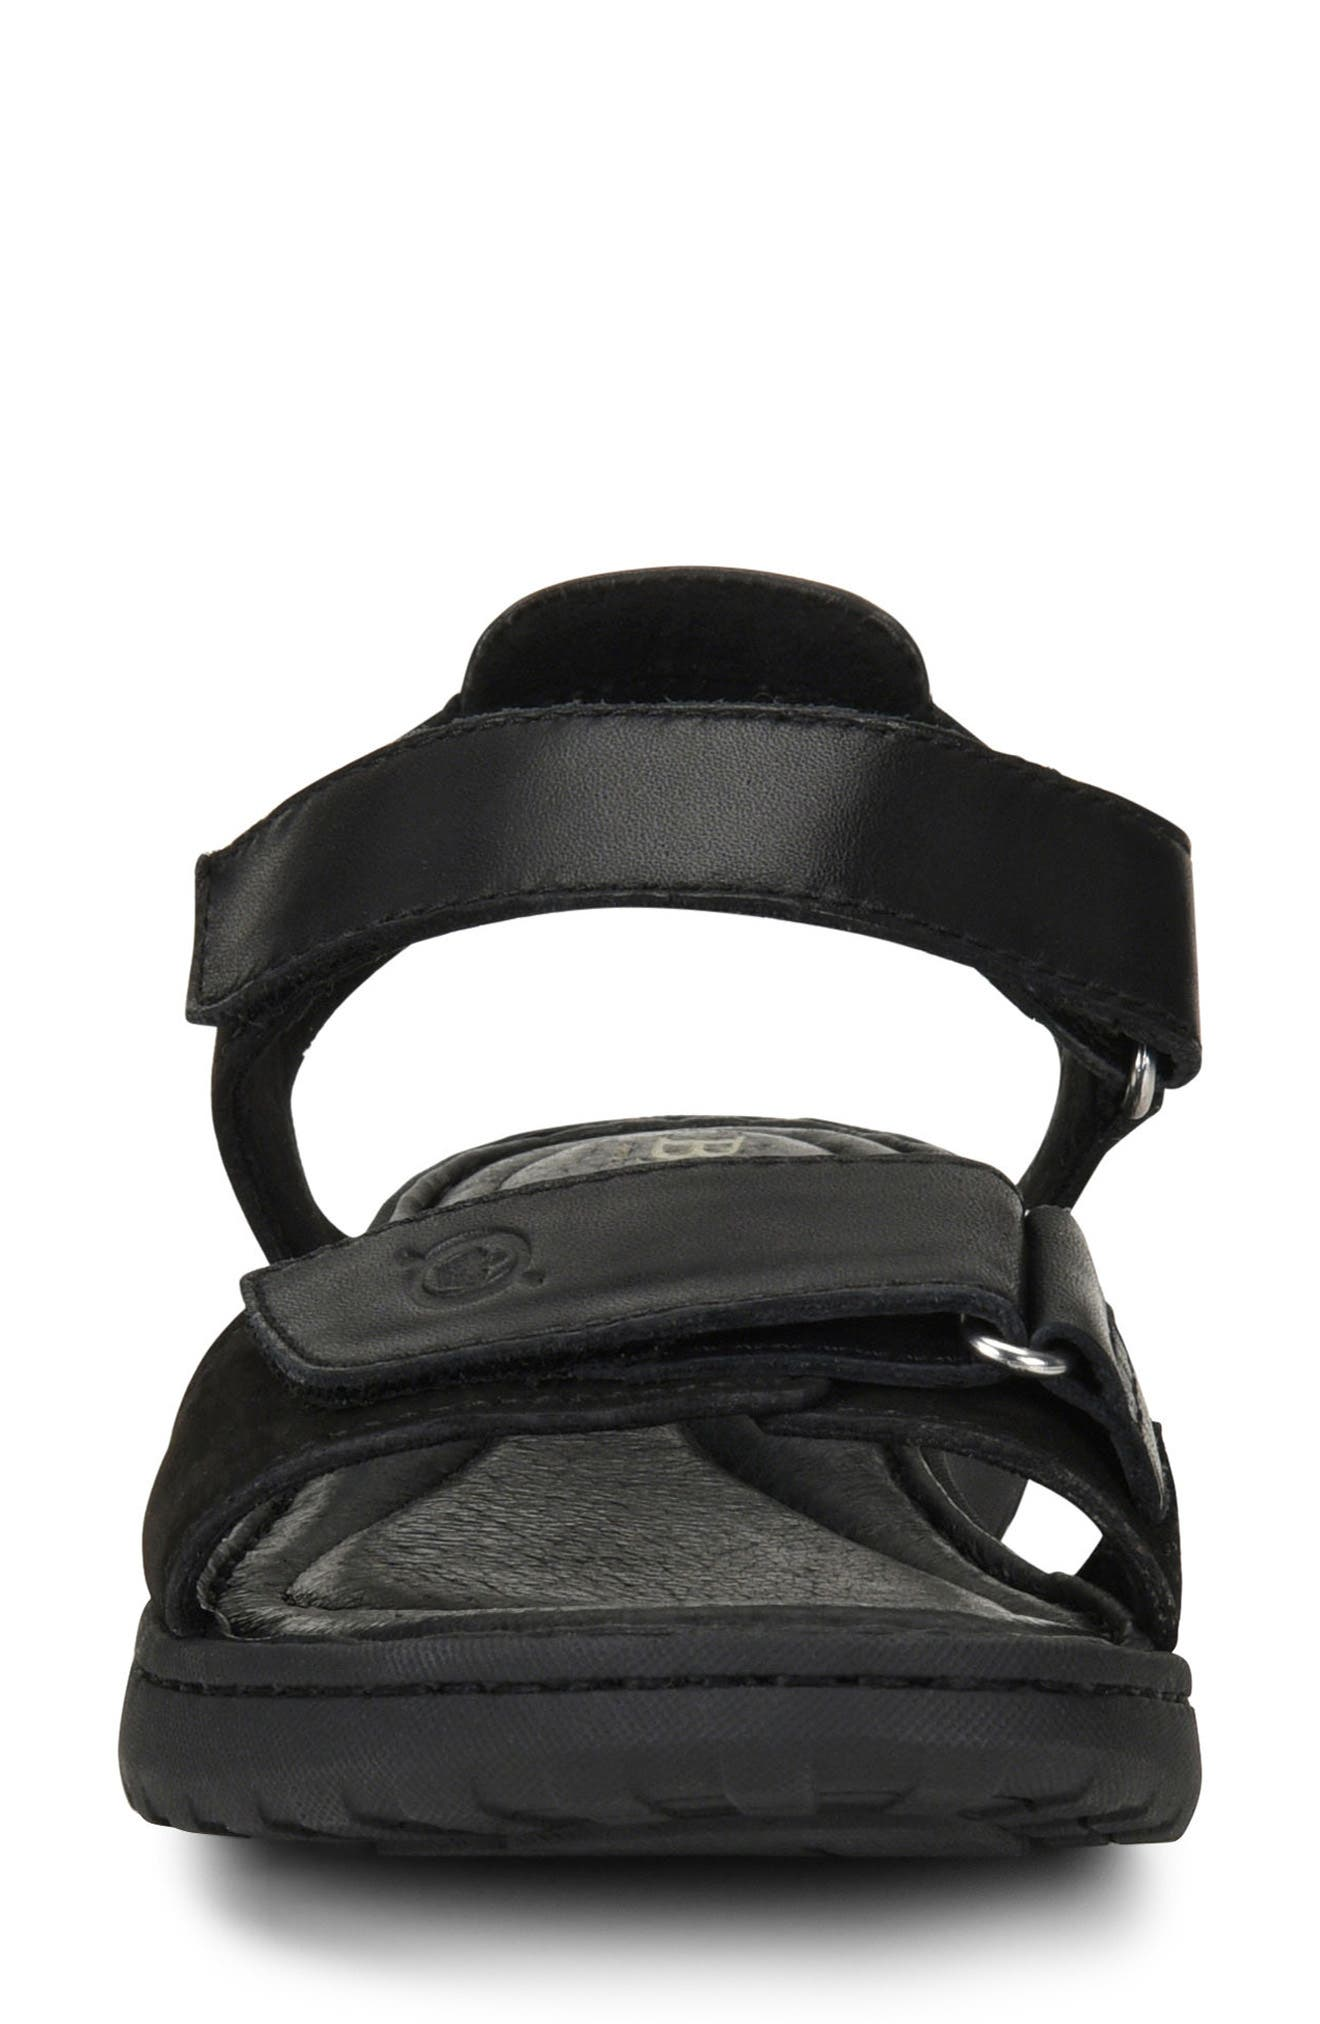 Nirvana Sandal,                             Alternate thumbnail 4, color,                             Black Leather